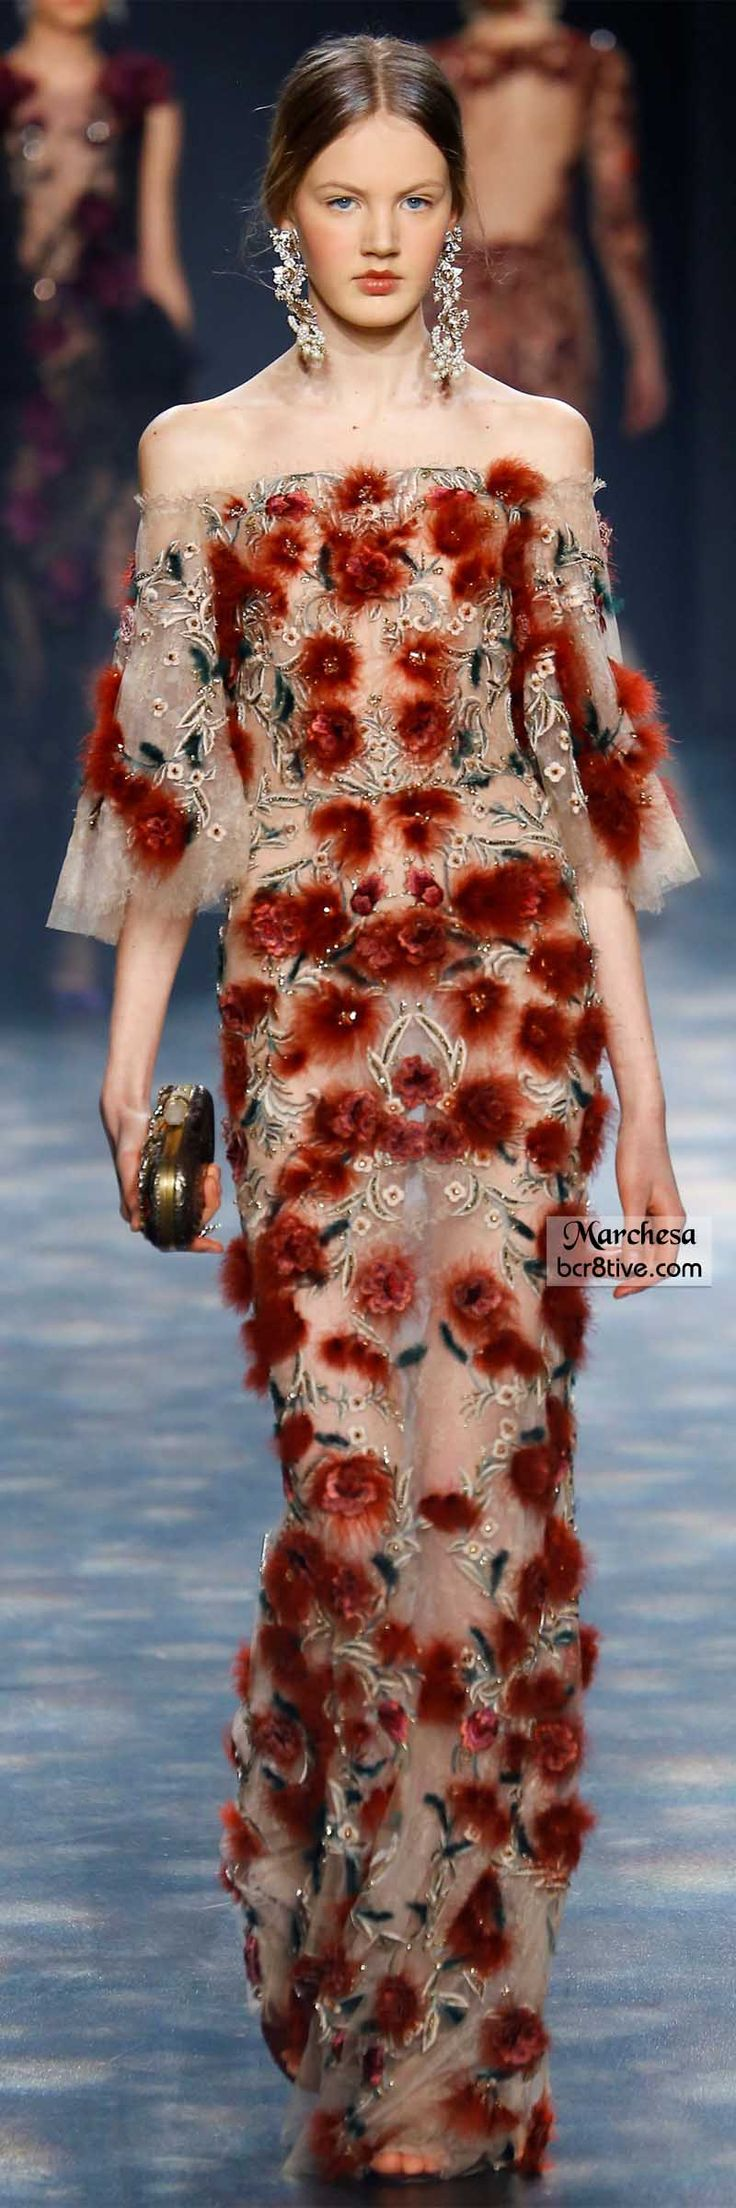 """Marchesa Fall 2016 """"And the LORD said to Moses, """"Go to the people and consecrate them today and tomorrow. Have them wash their clothes."""" Exodus 19:10"""